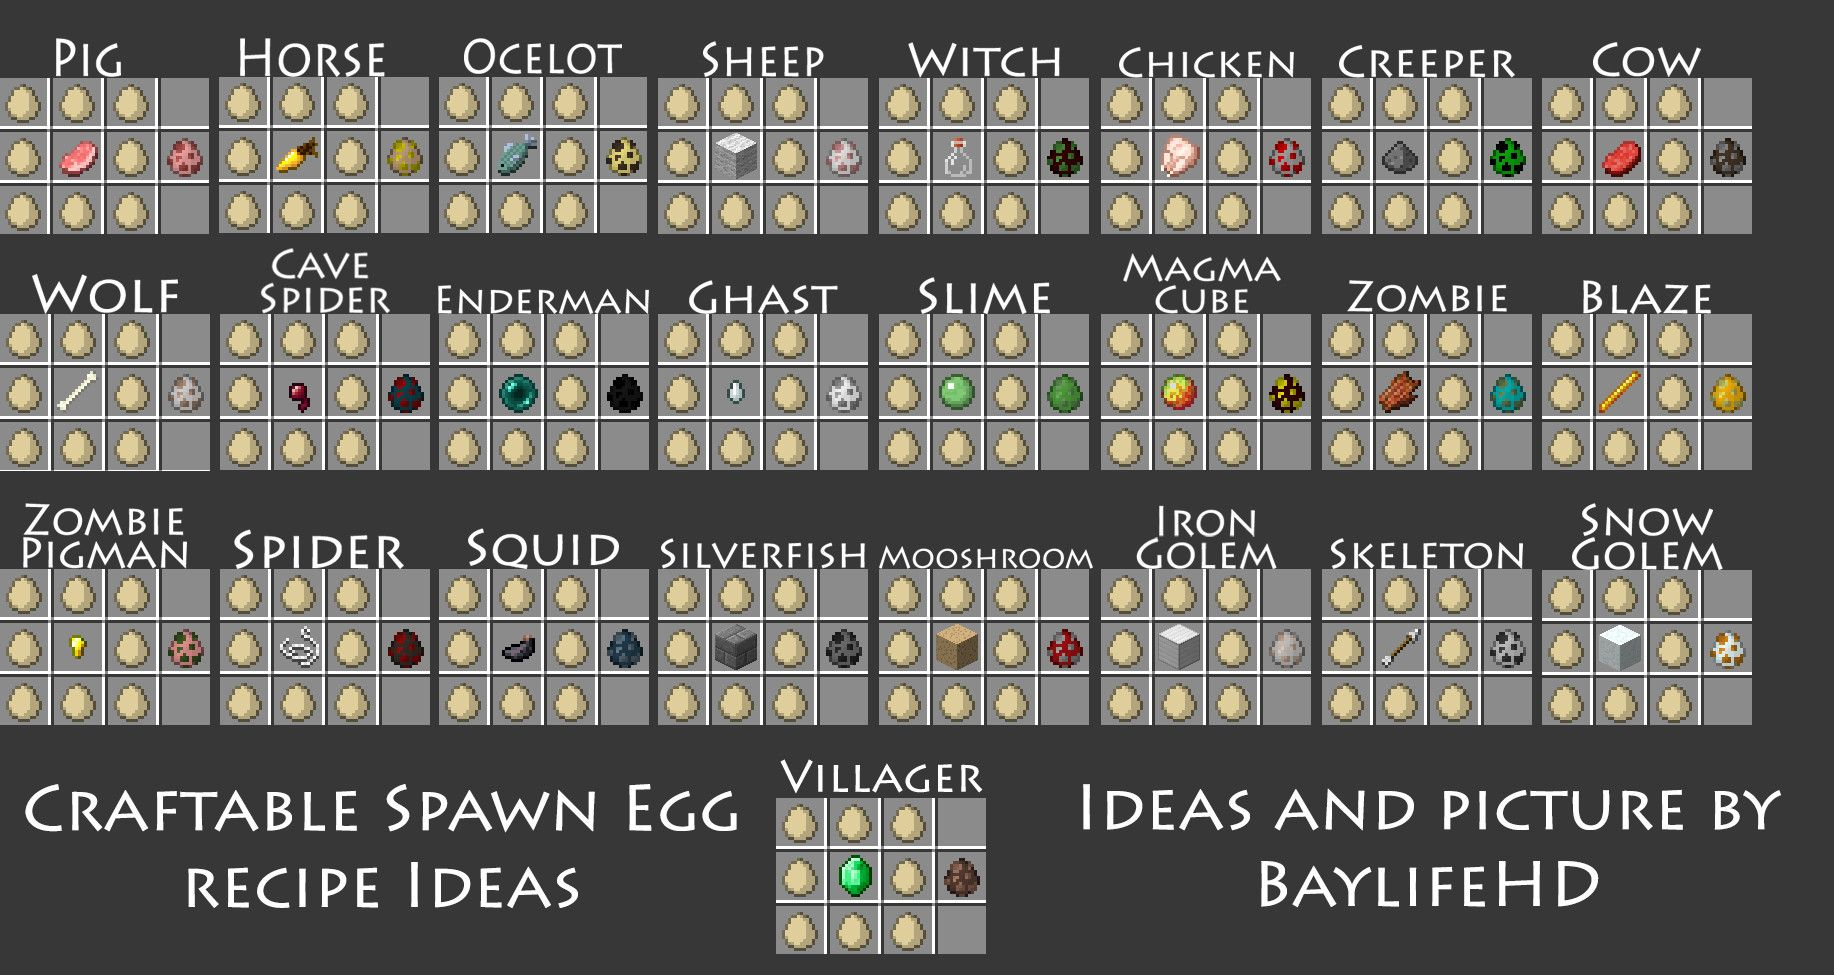 Request 162 craftable spawn eggs requests ideas for mods request craftable spawn eggs requests ideas for mods minecraft mods mapping and modding minecraft forum minecraft ccuart Choice Image